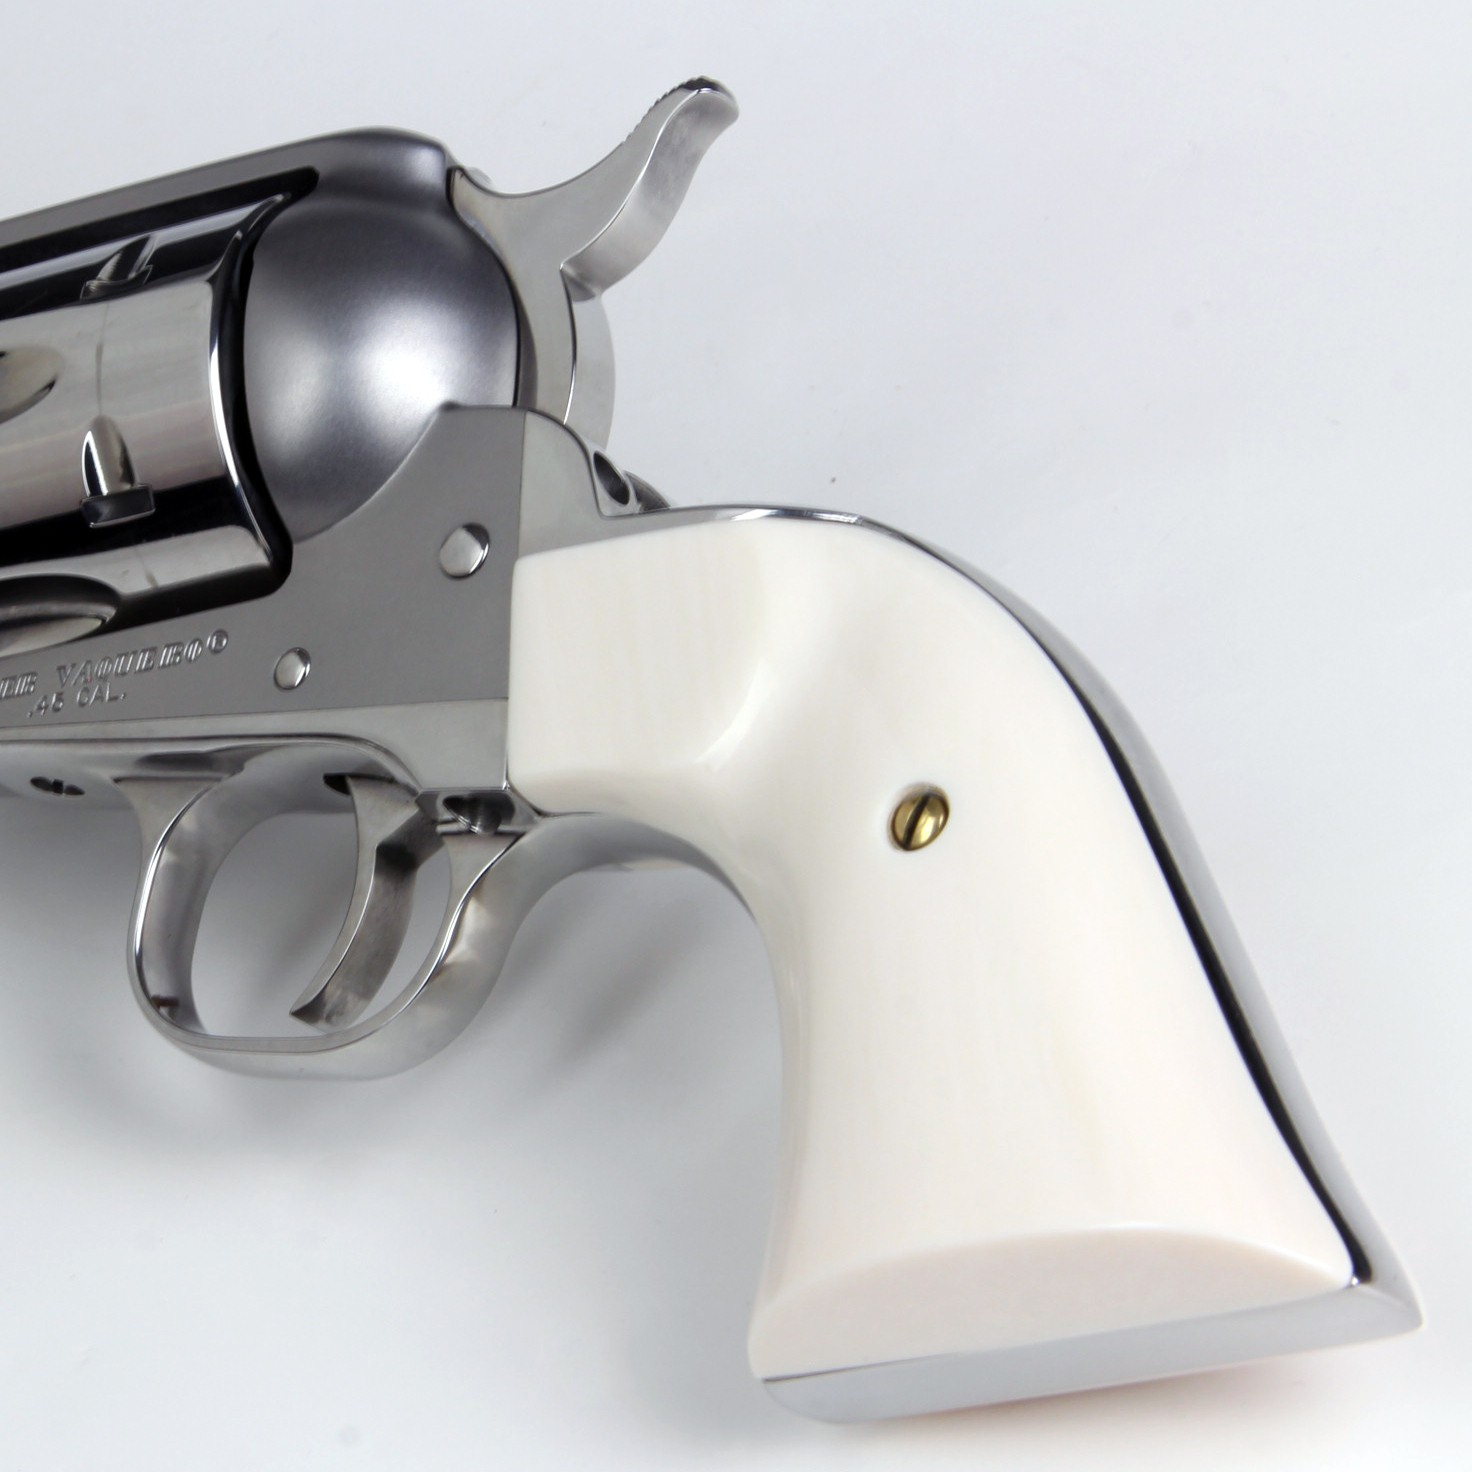 Ruger New Vaquero Ultra Ivory Gunfighter Grips